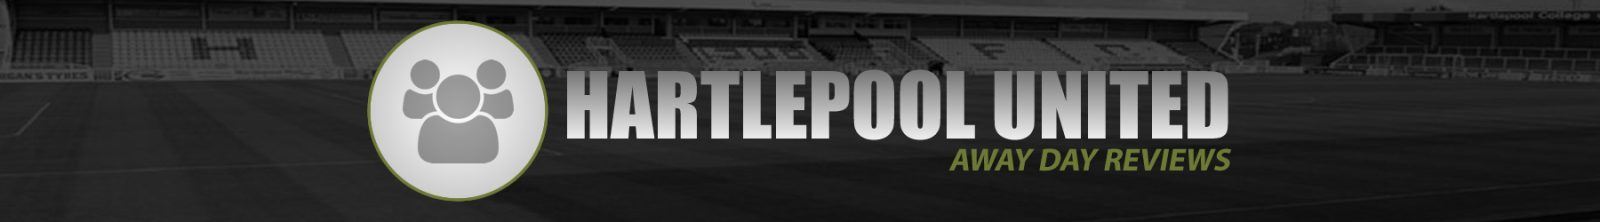 Review Hartlepool United